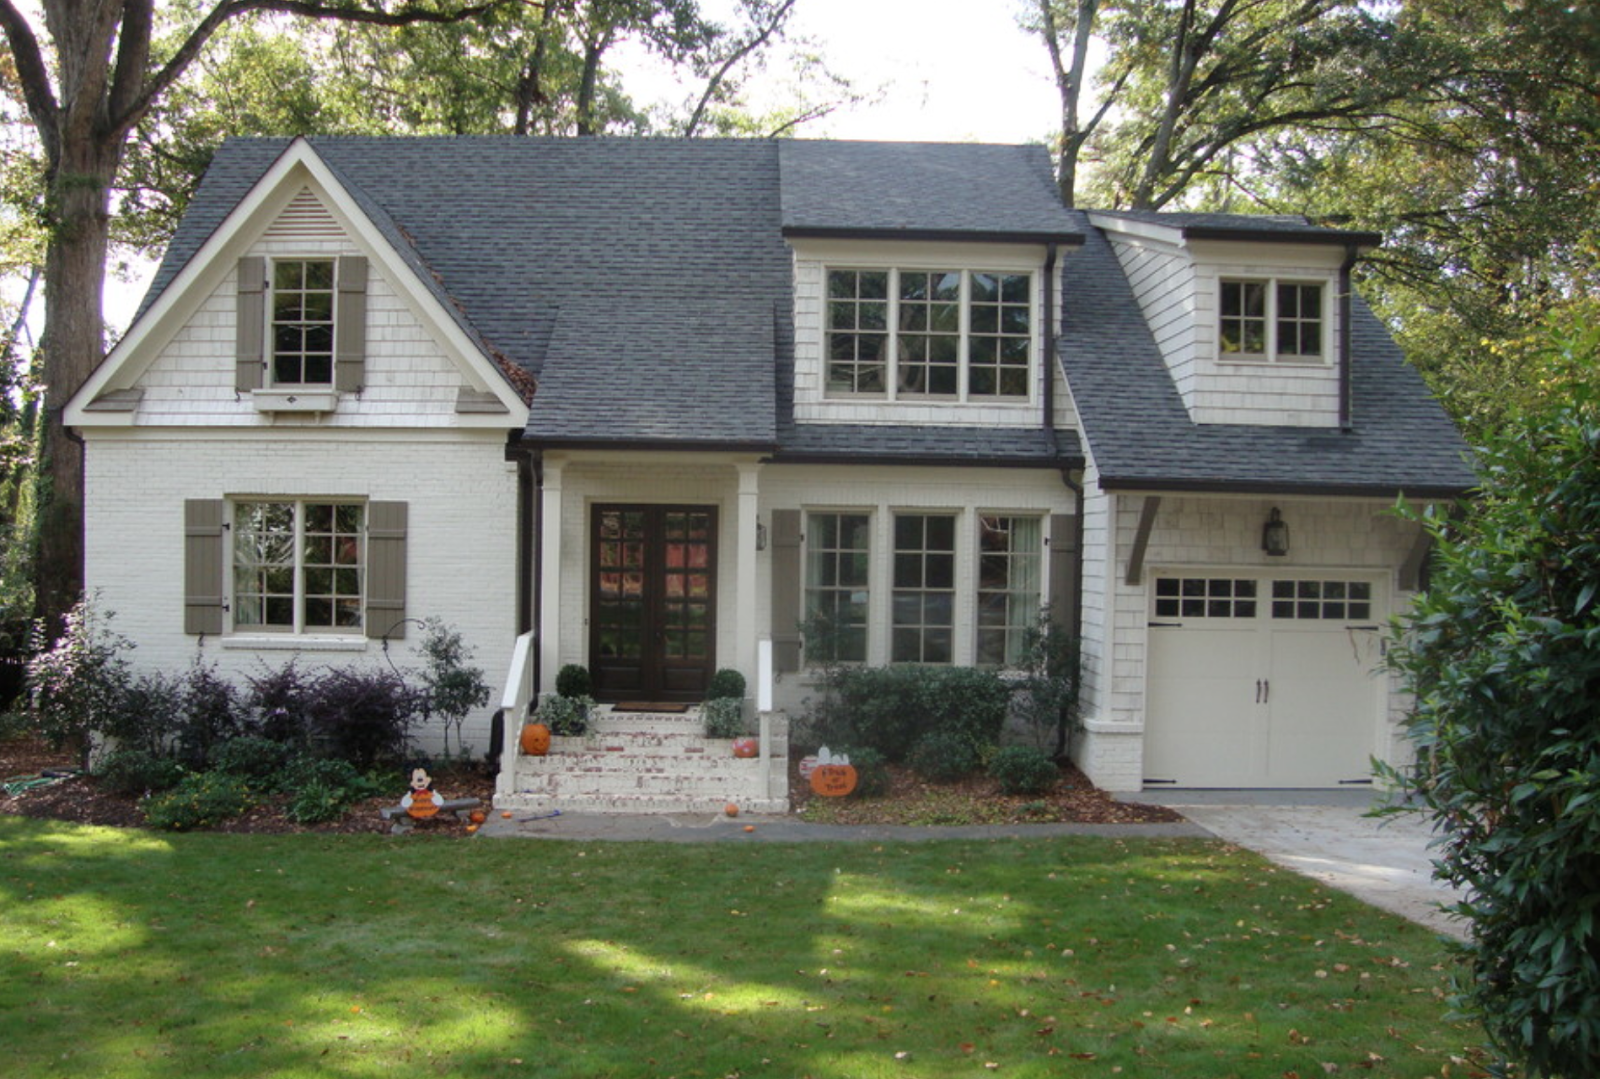 Ranch Renovation Ranch House Remodel House Exterior Exterior House Colors